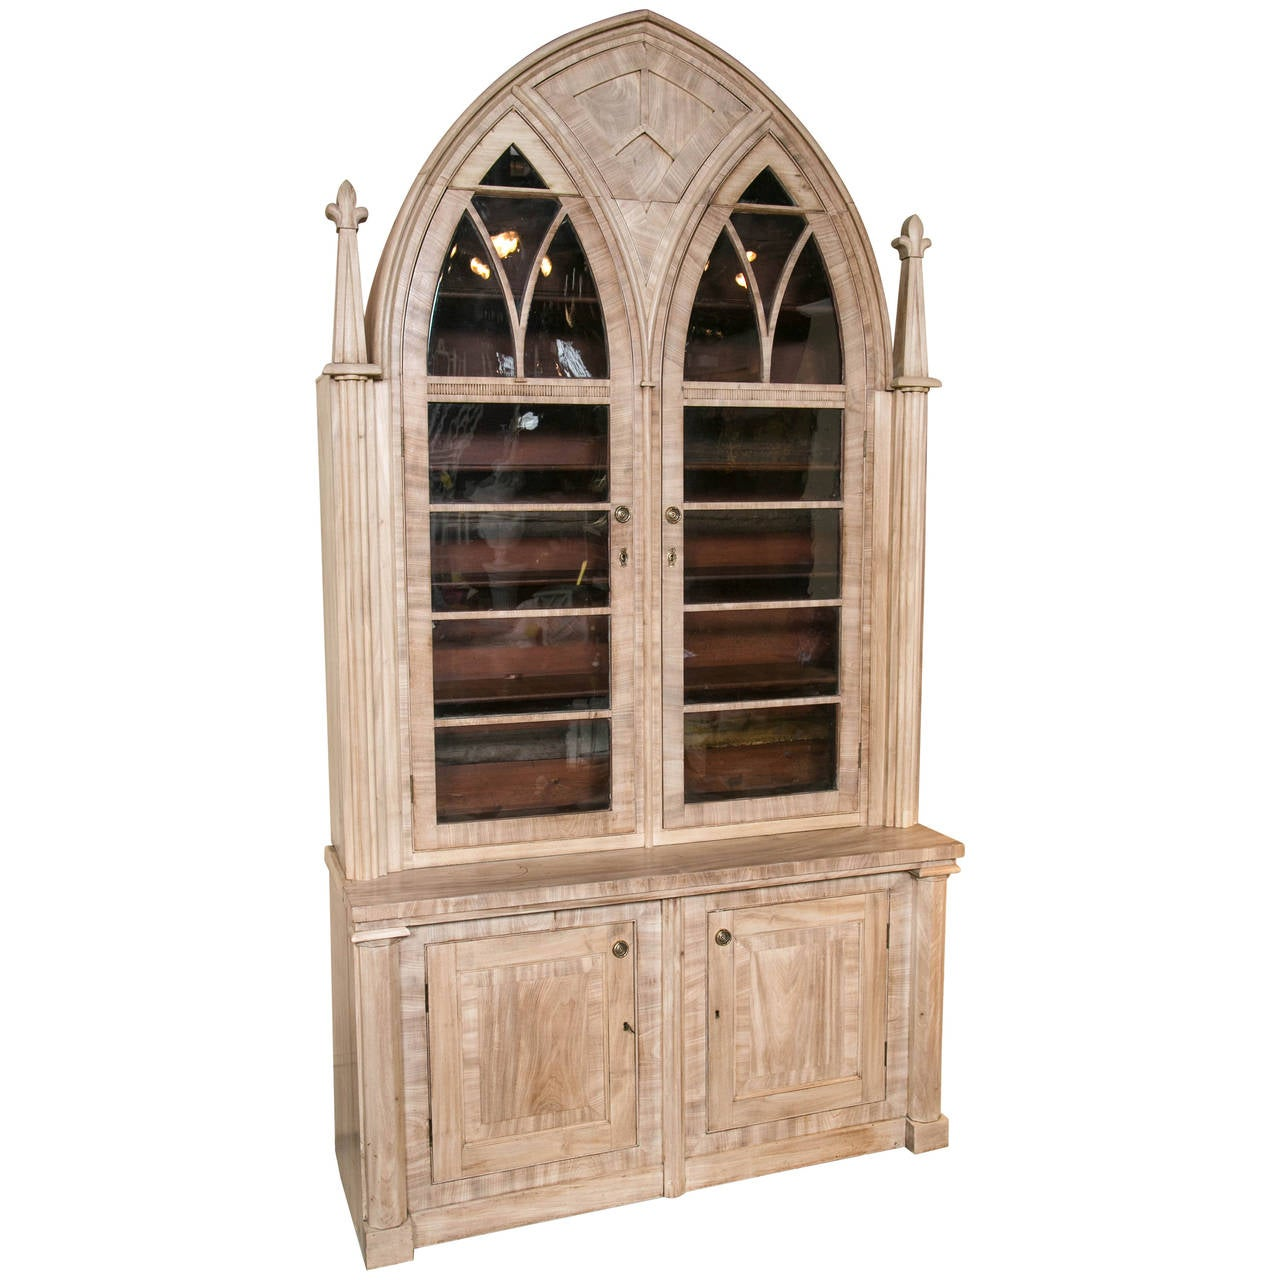 Gothic English Bleached Mahogany Cabinet For Sale At 1stdibs